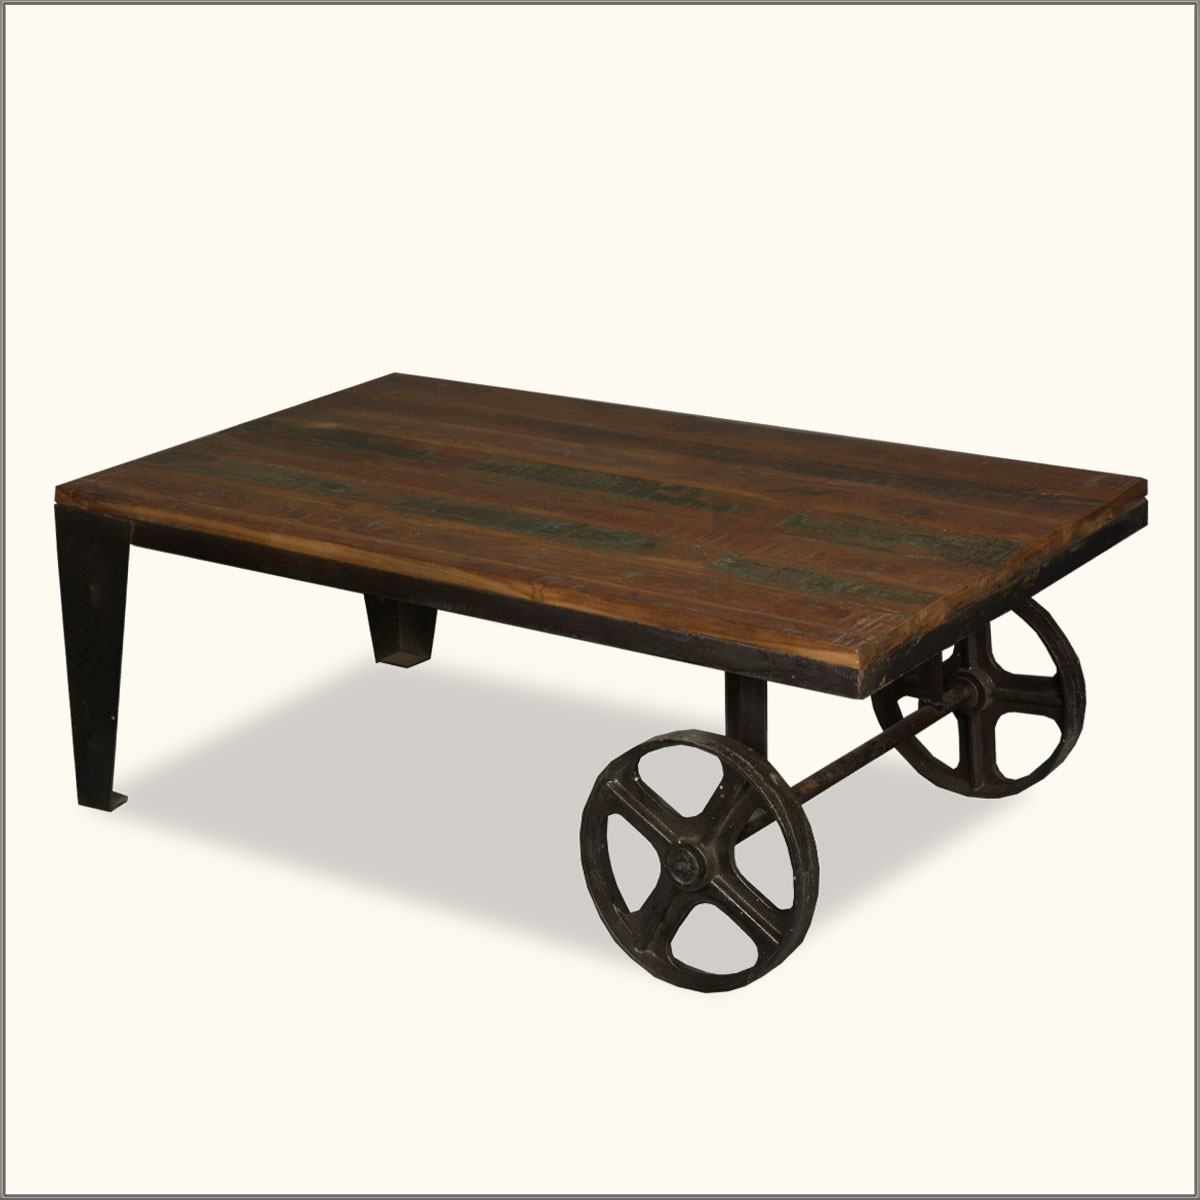 Industrial Coffee Table Images: Industrial Wrought Iron & Reclaimed Wood Coffee Table Cart